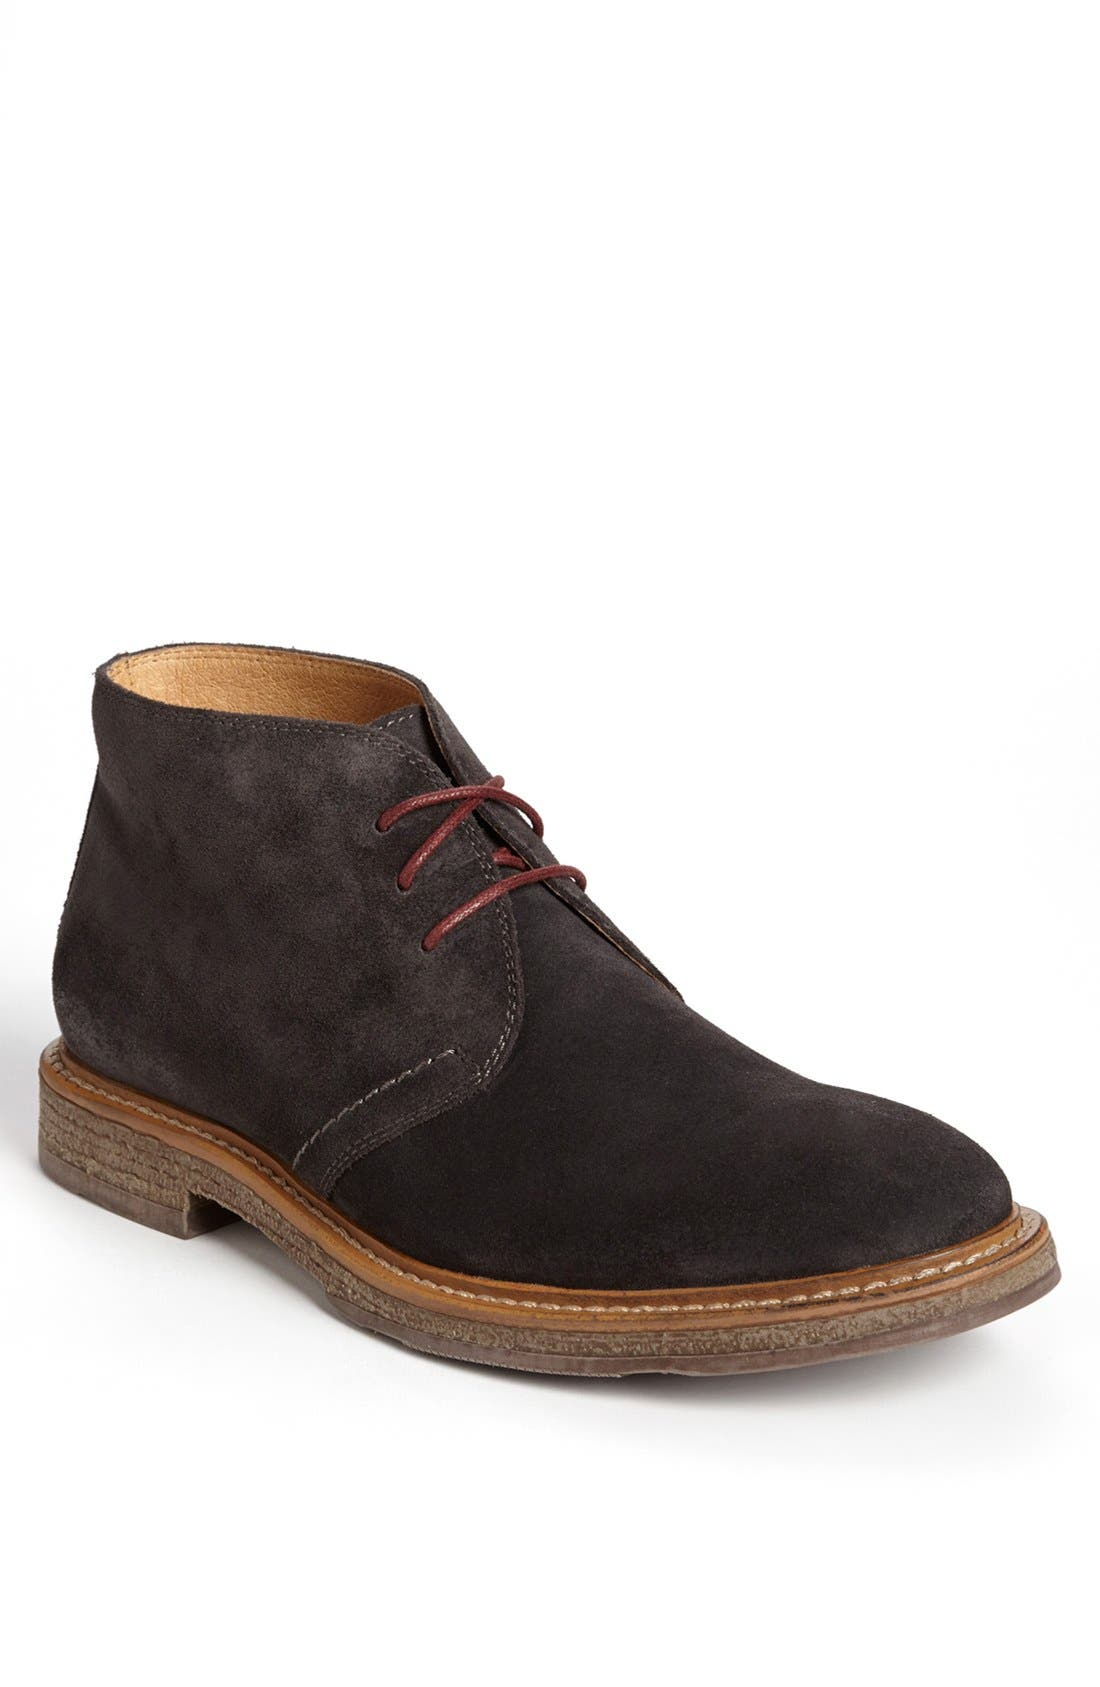 'Canyon' Chukka Boot,                             Main thumbnail 1, color,